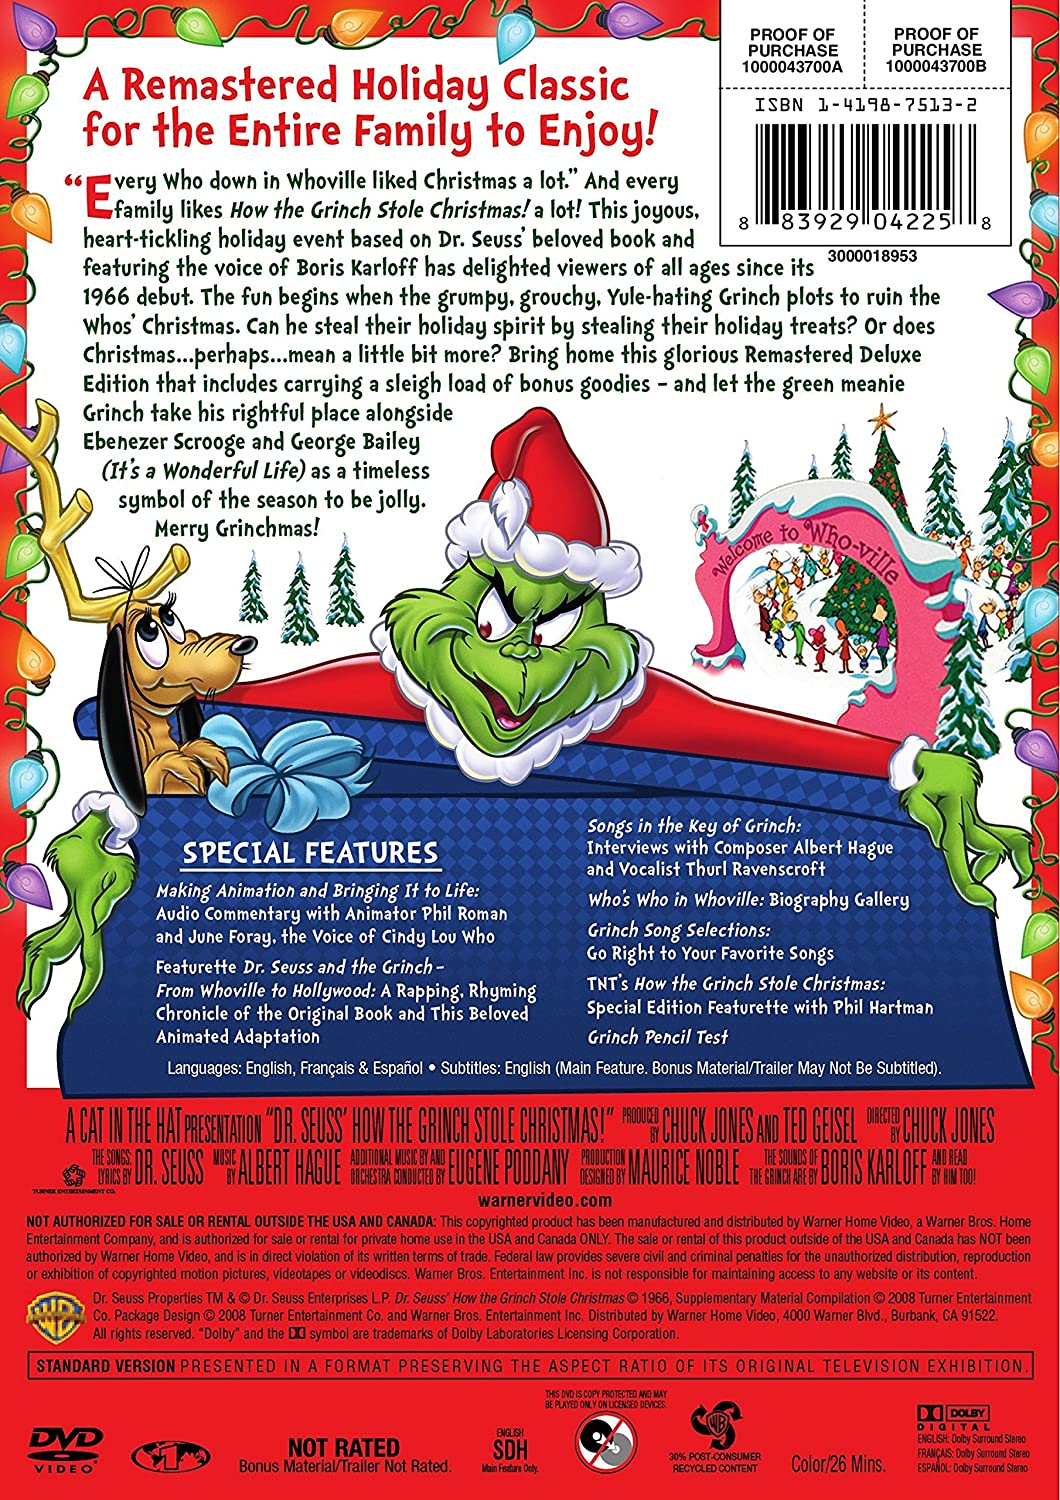 amazoncom dr seuss how the grinch stole christmas deluxe edition boris karloff dr seuss movies tv - How The Grinch Stole Christmas Putlocker